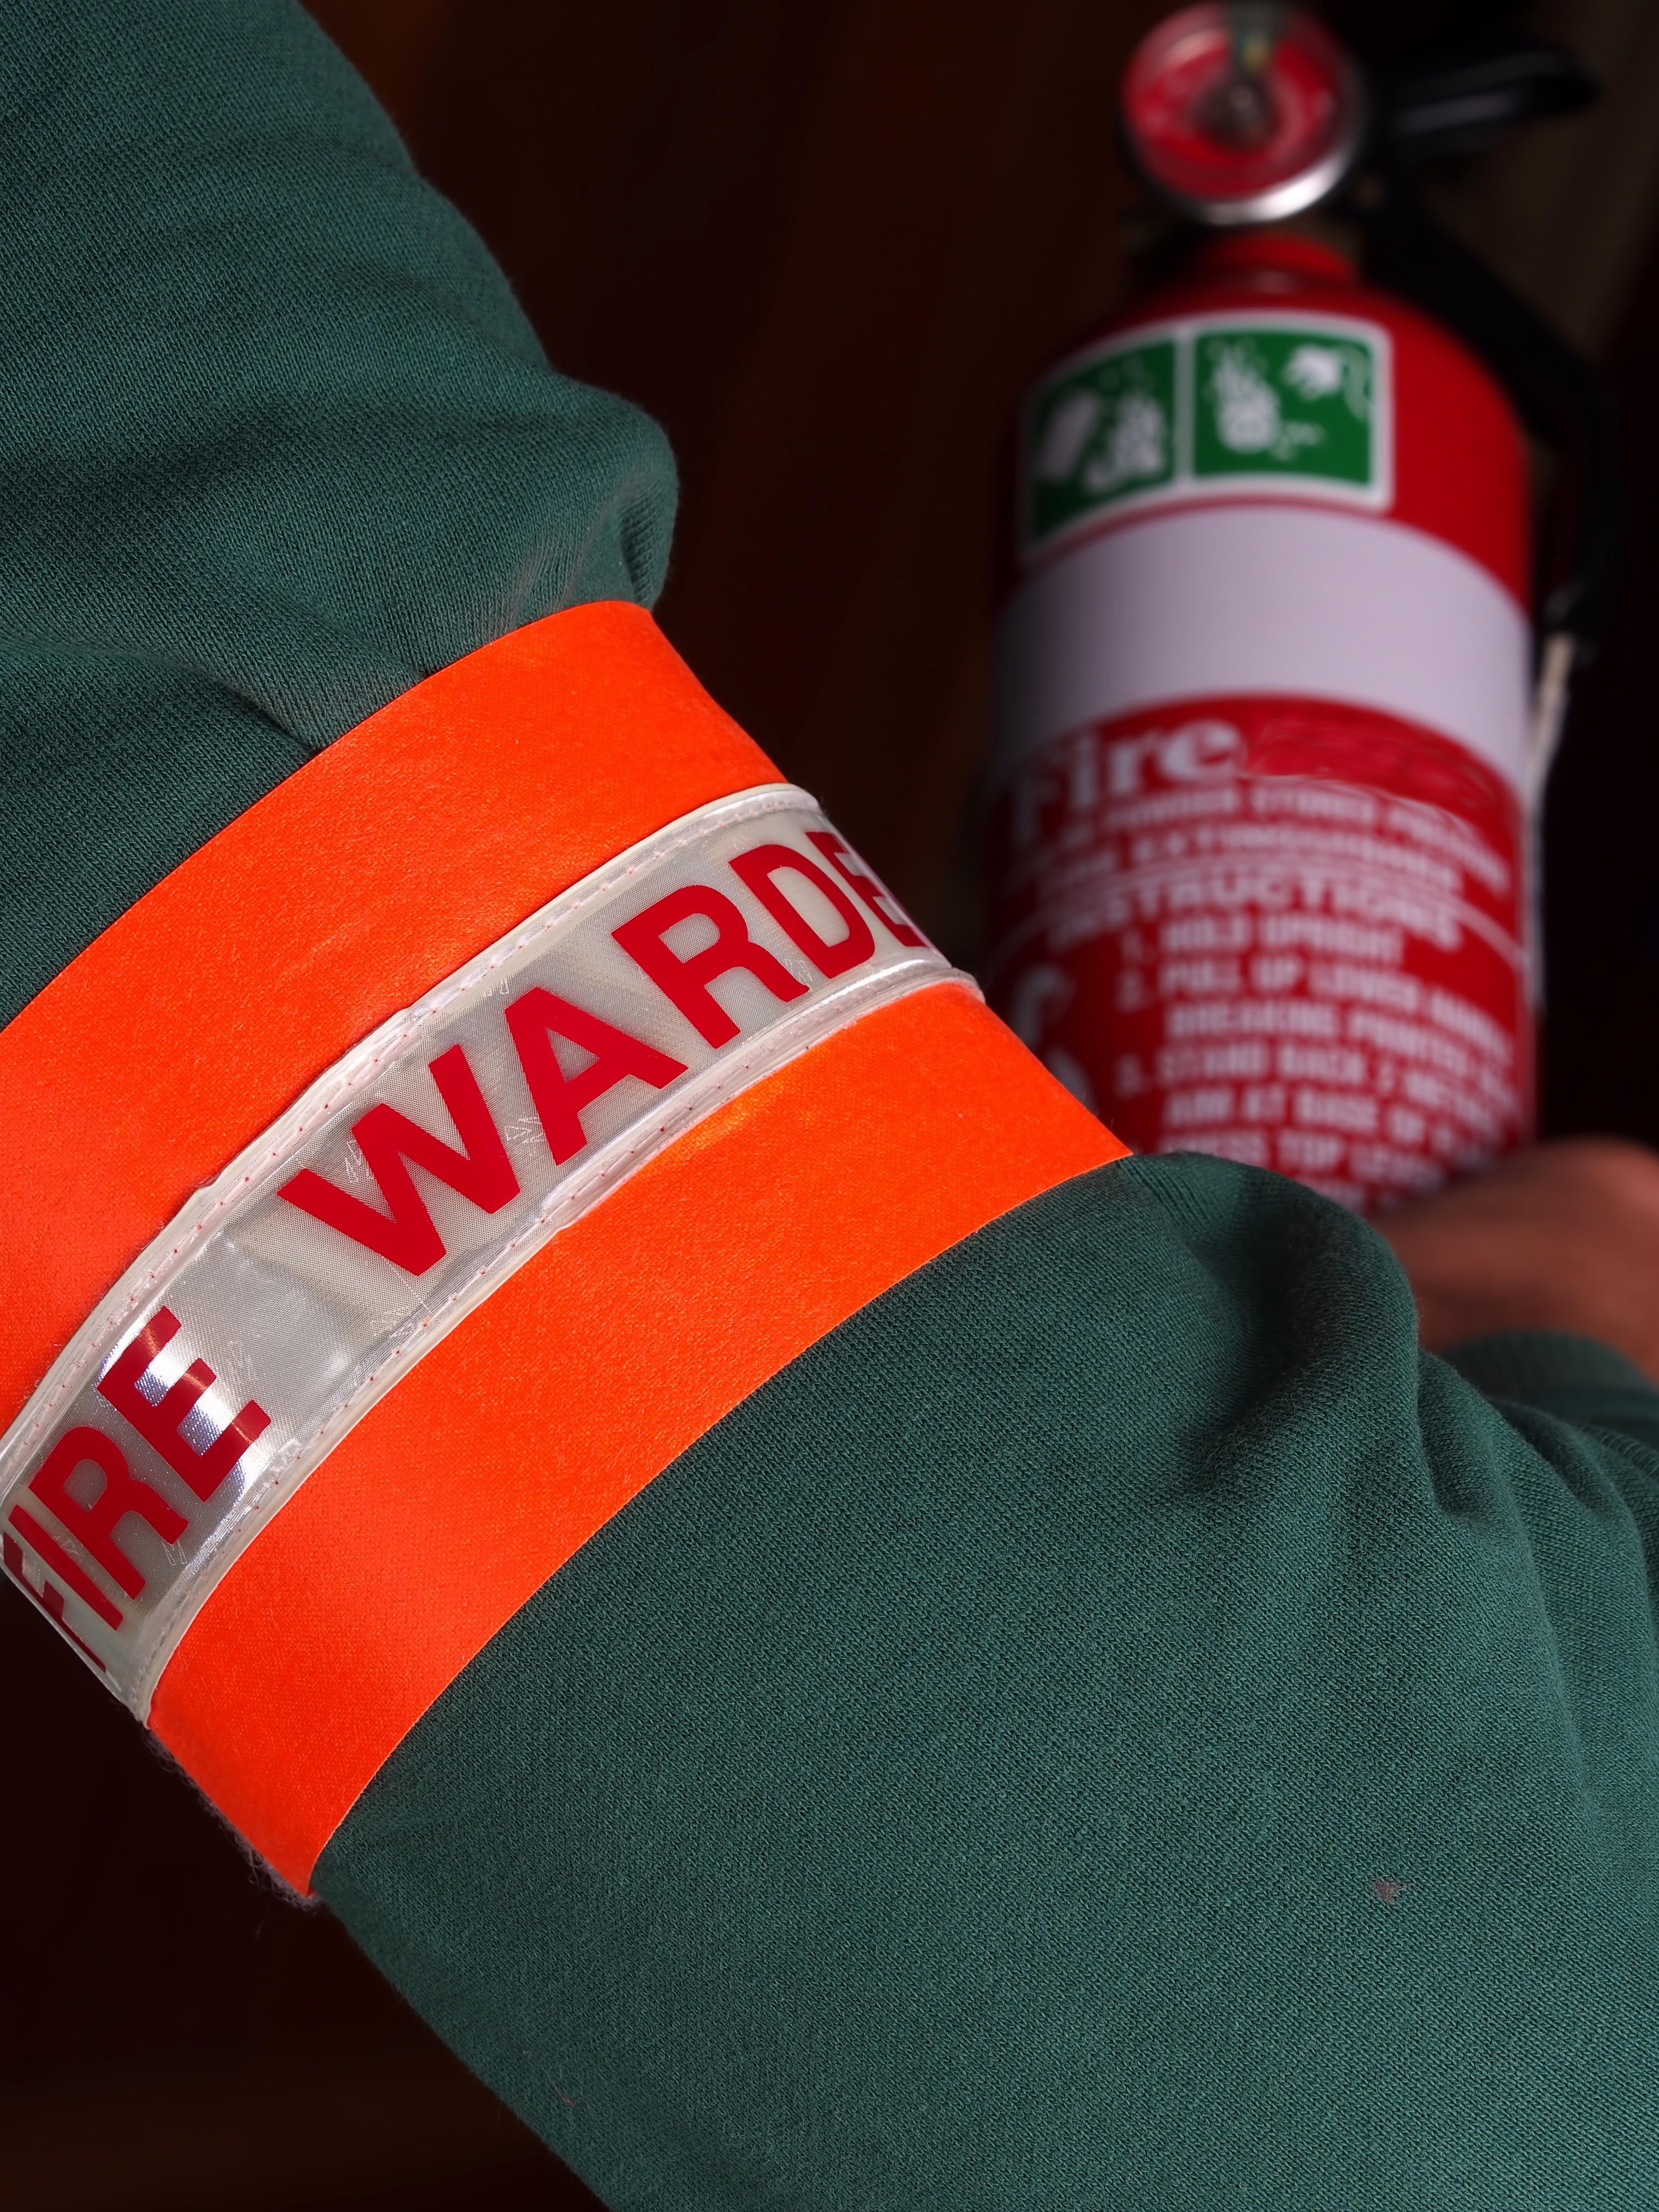 advertise Fire warden training courses